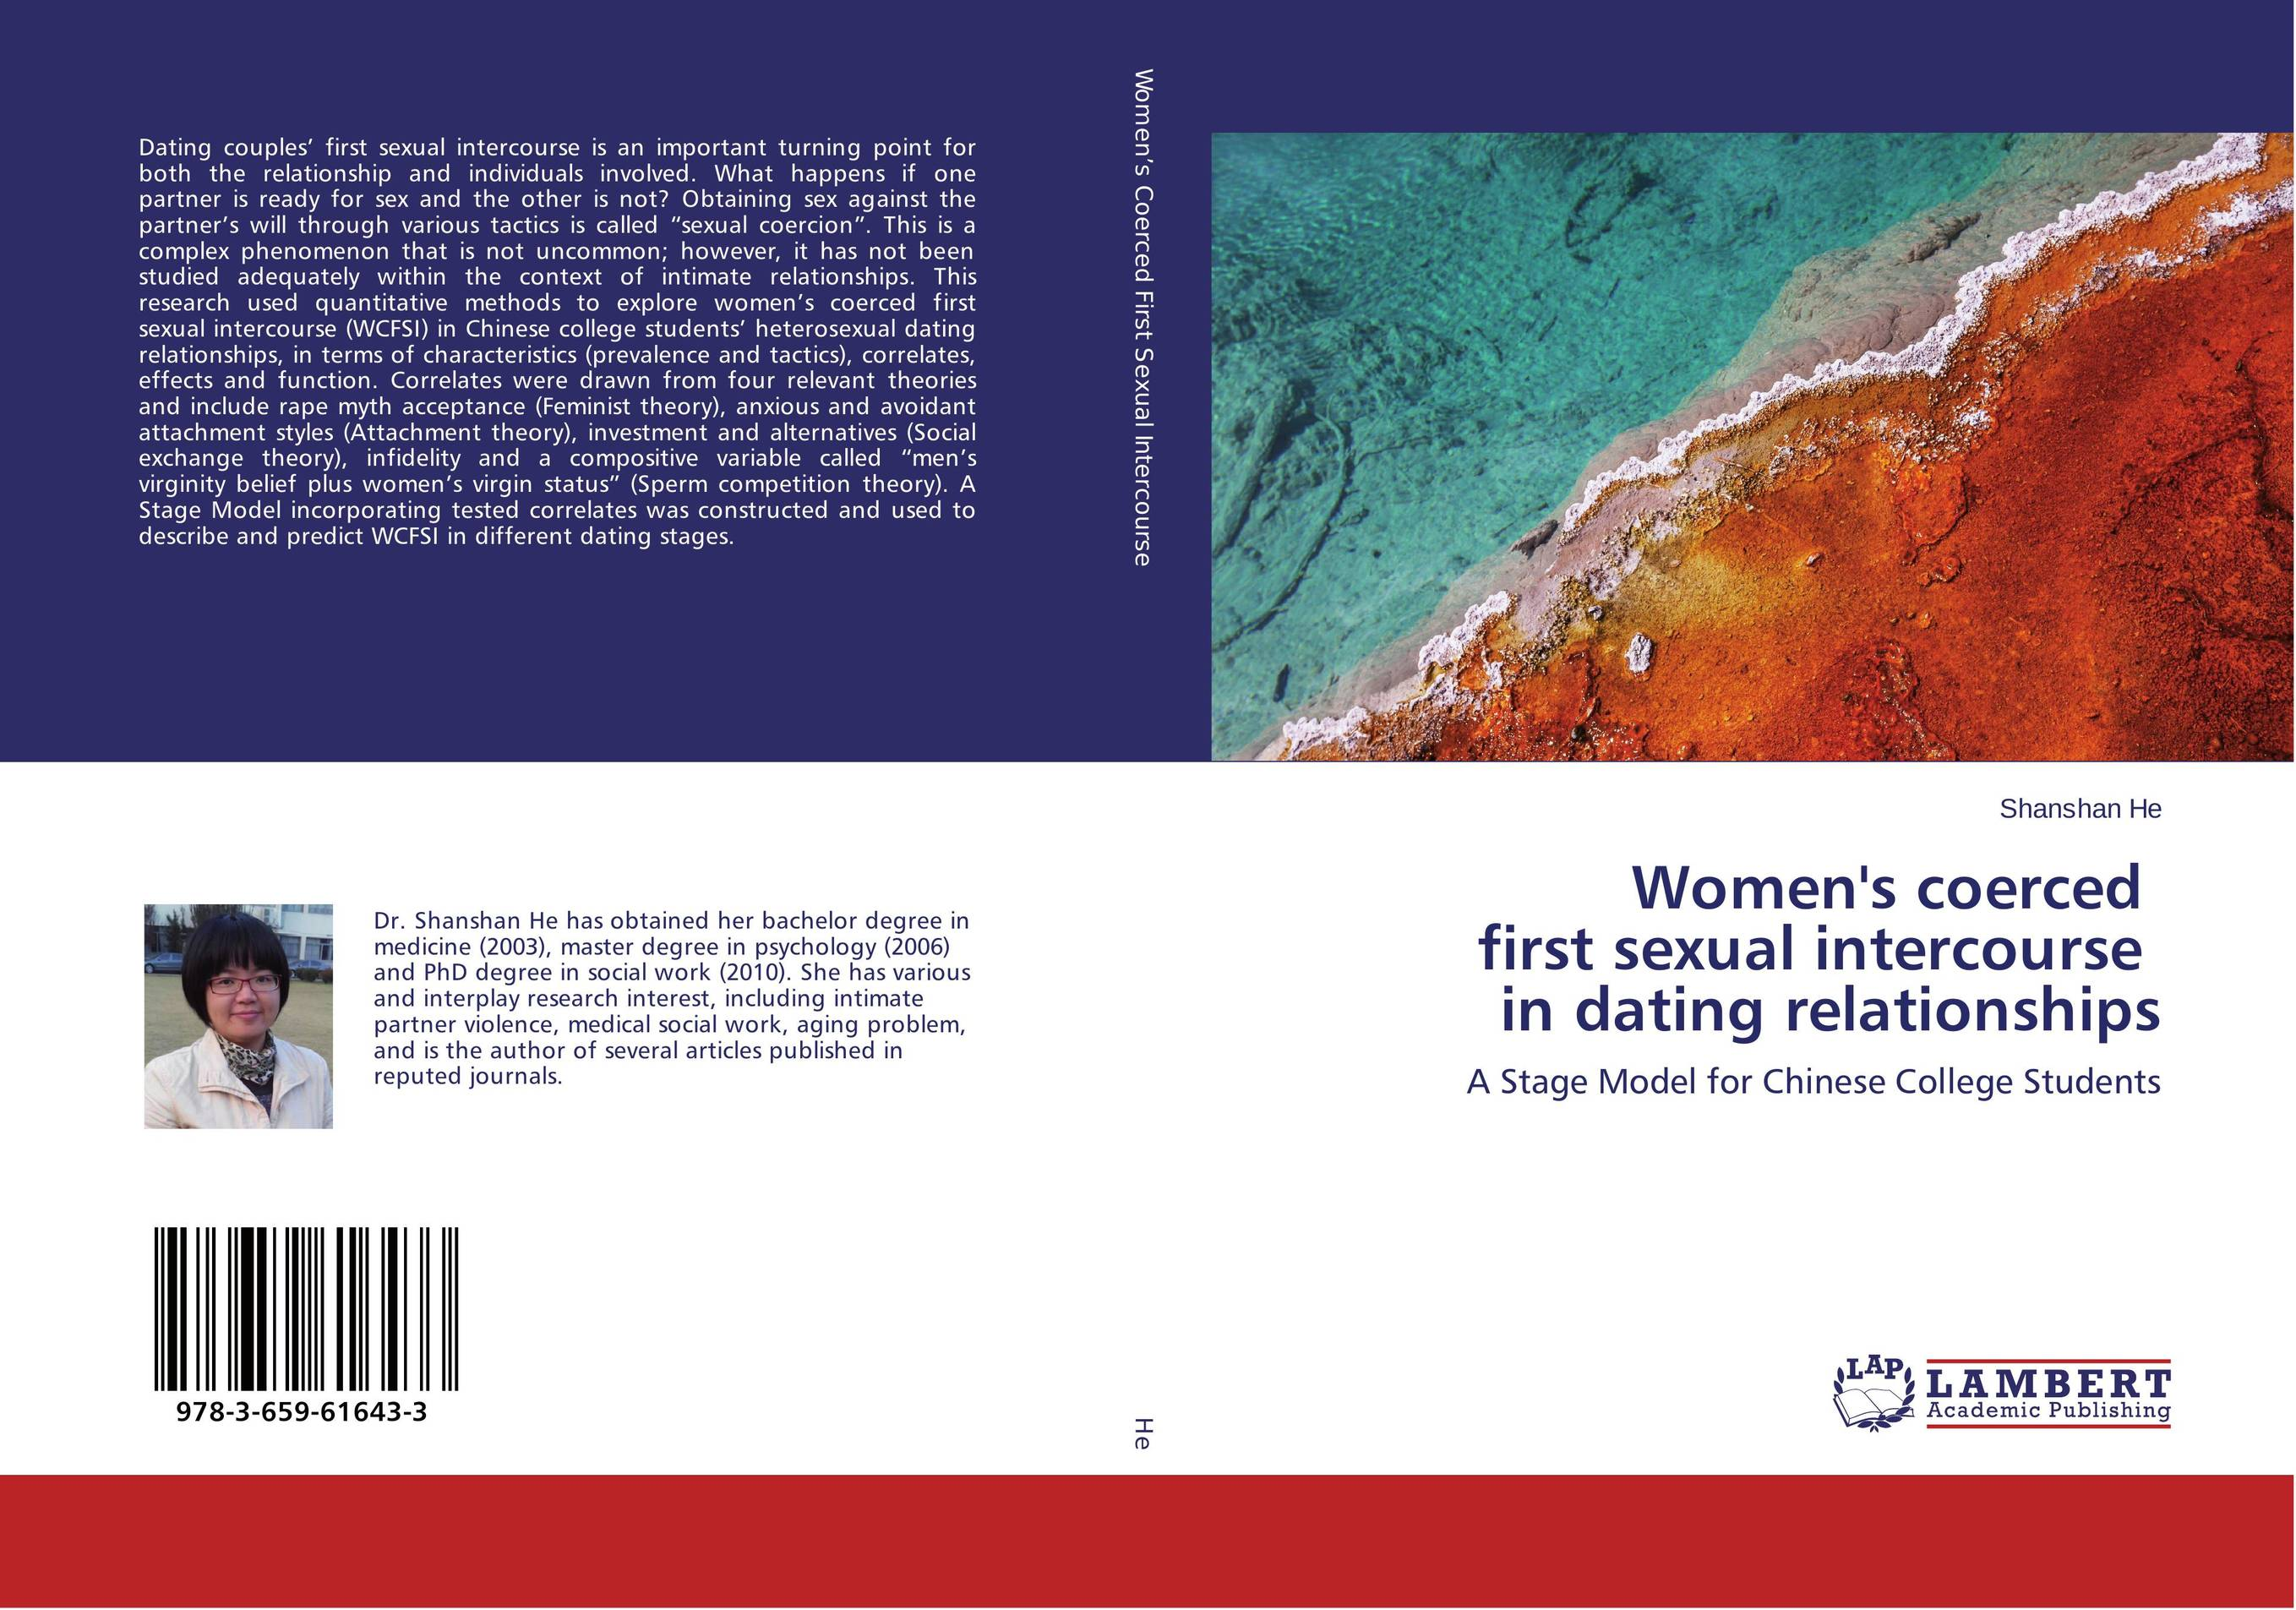 Women's coerced first sexual intercourse in dating relationships консоль 195x135 70 бел